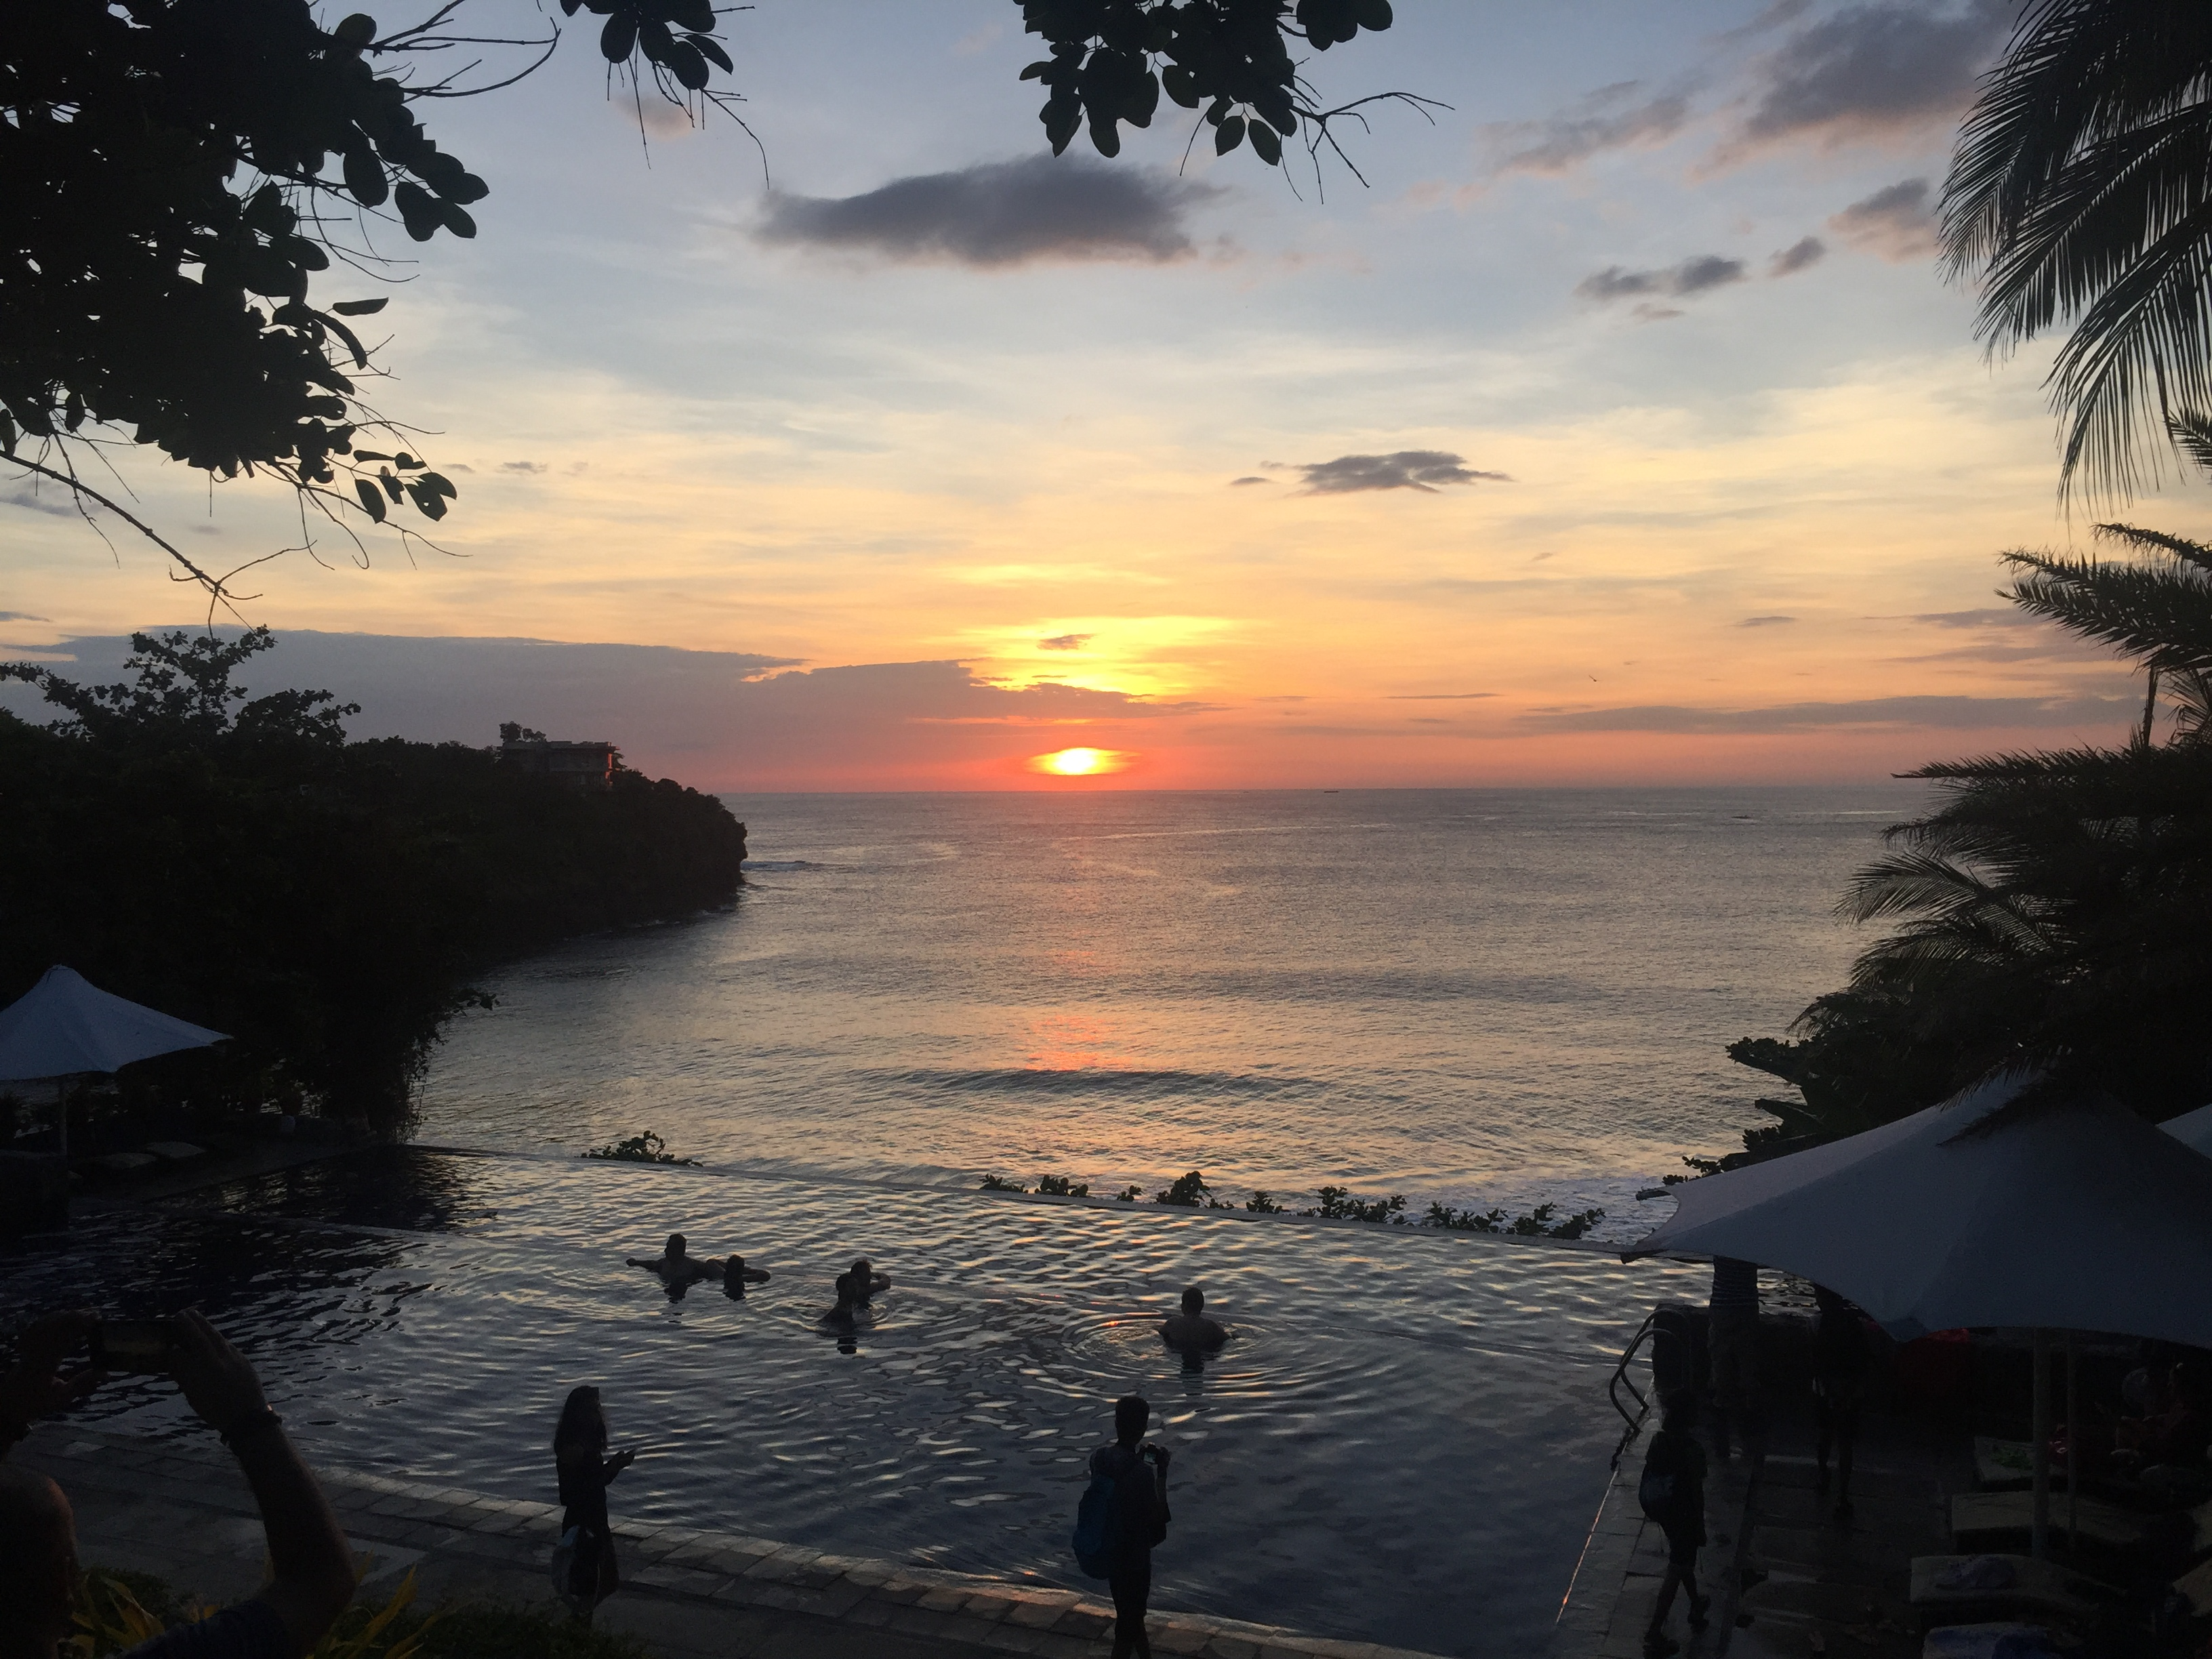 club punta fuego batangas infinity pool sunset